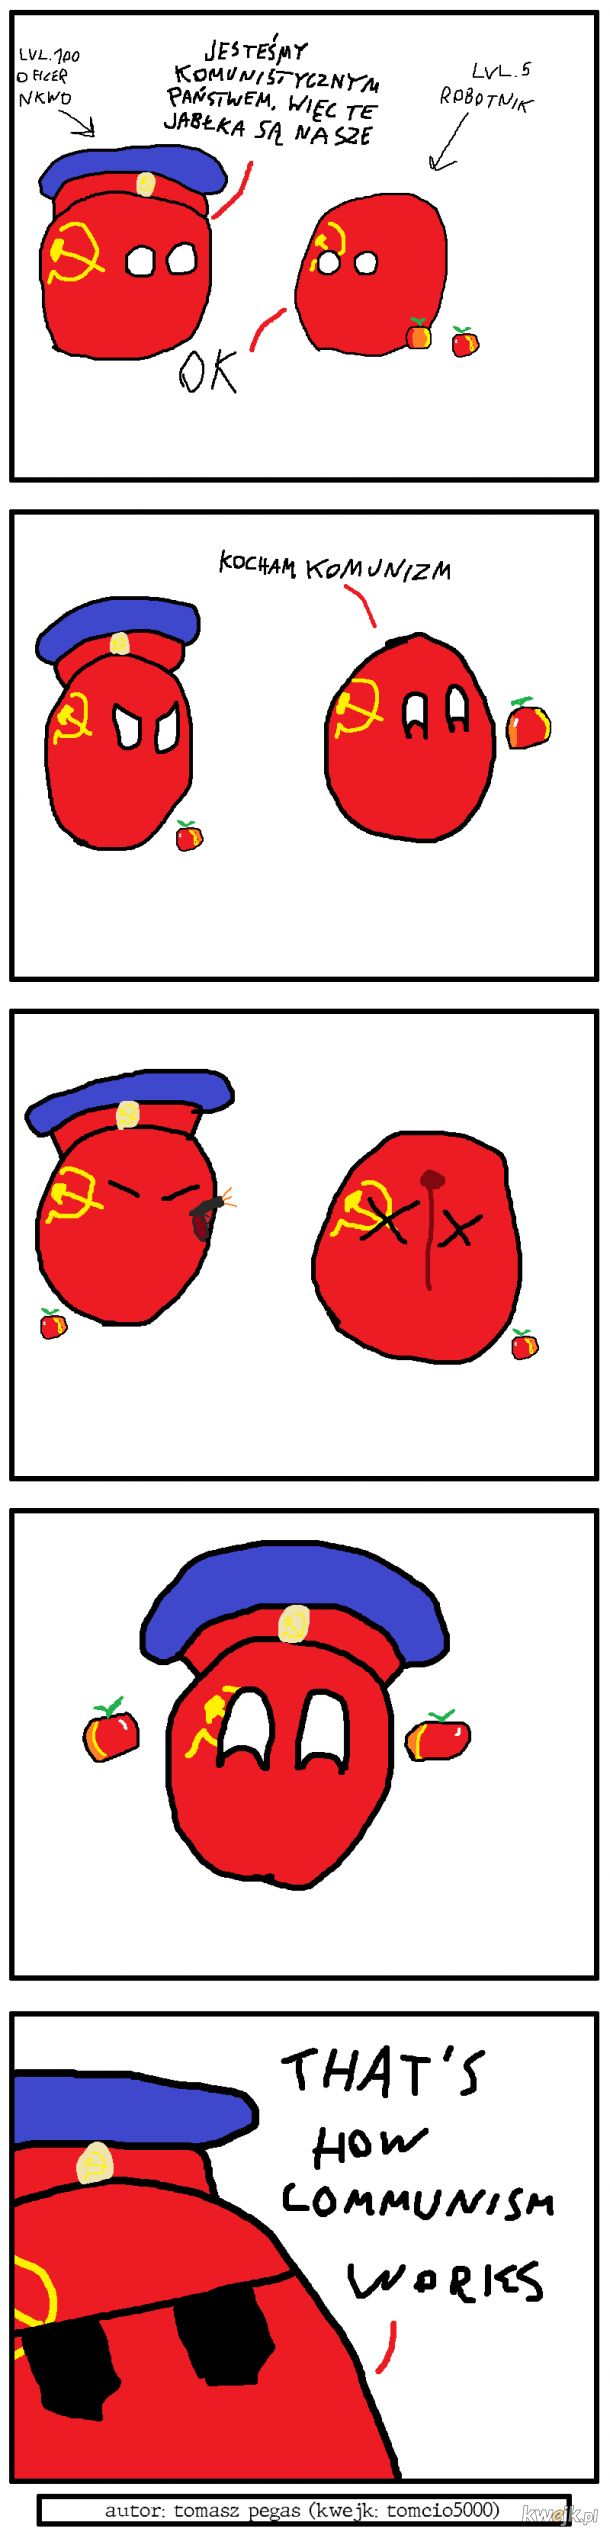 That's how communism works